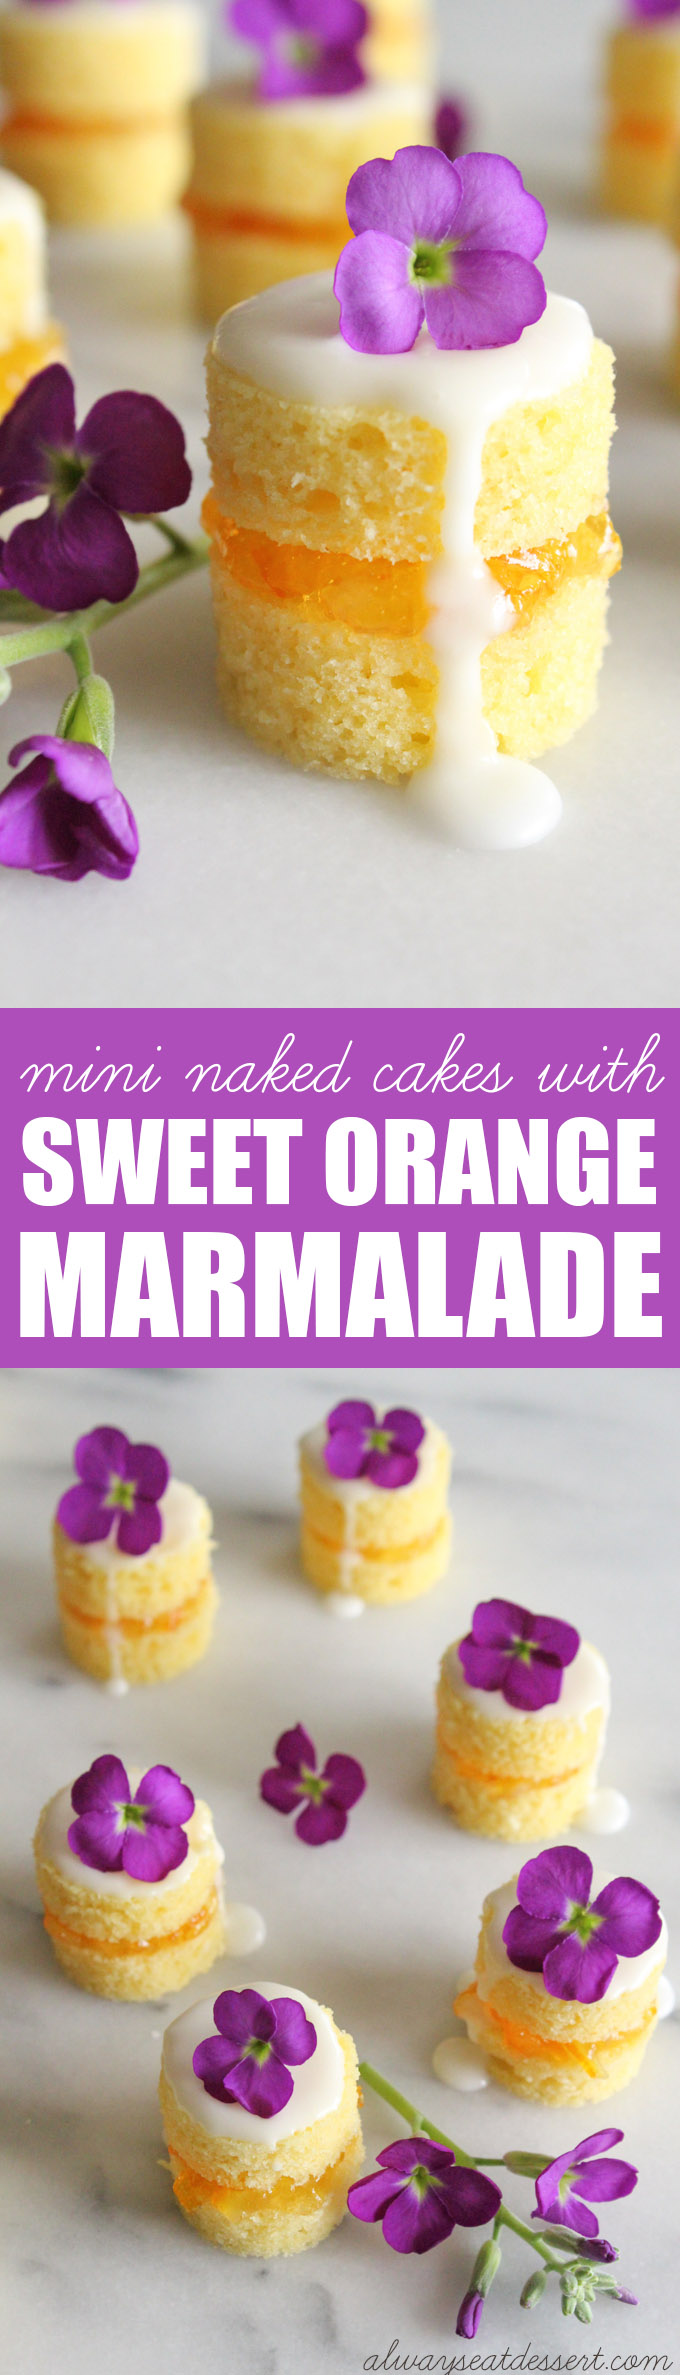 These mini naked cakes filled with sweet and tangy orange marmalade and garnished with fresh flowers are an elegant treat for a springtime brunch. They may look fancy, but they're simple to make.